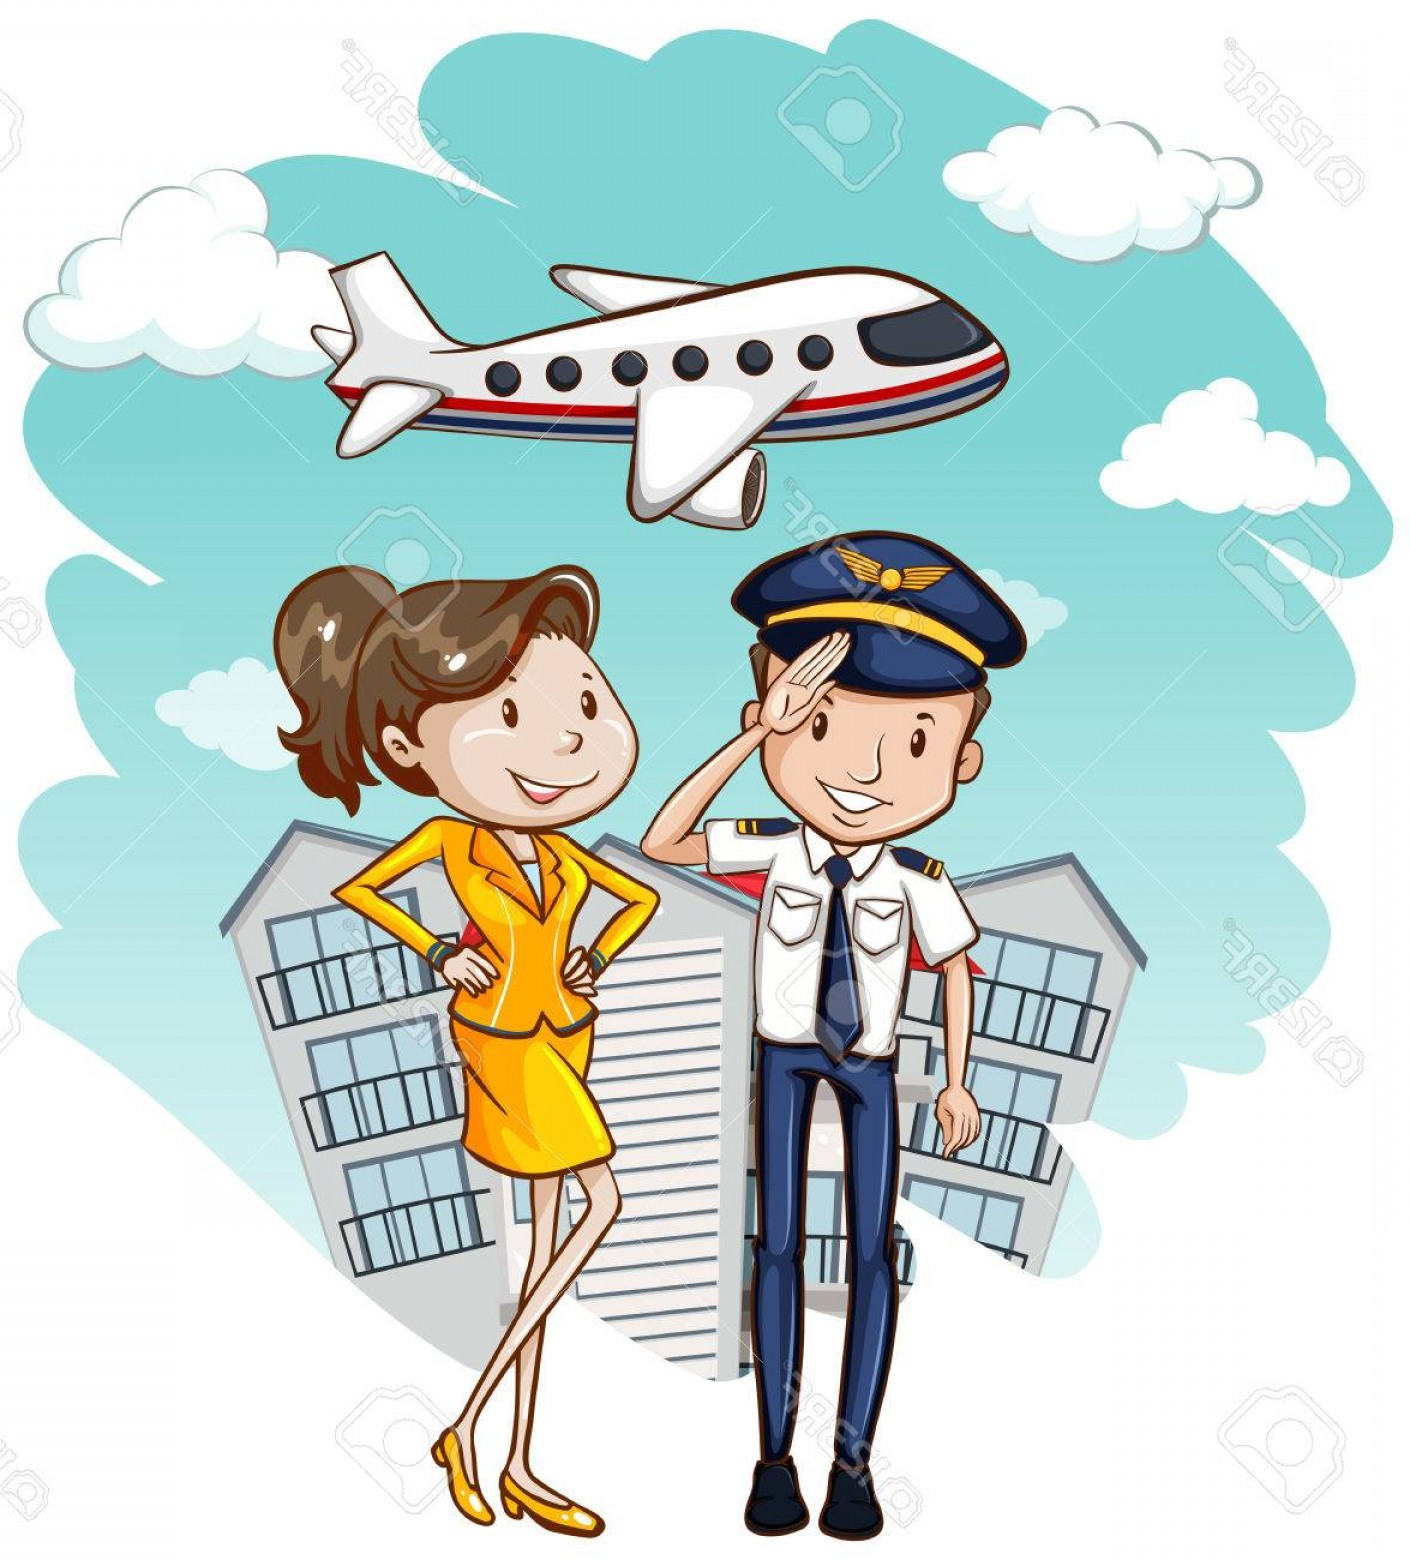 Vector Man Working In Cabin: Photostock Vector Cabin Crew Working In Airline Illustration